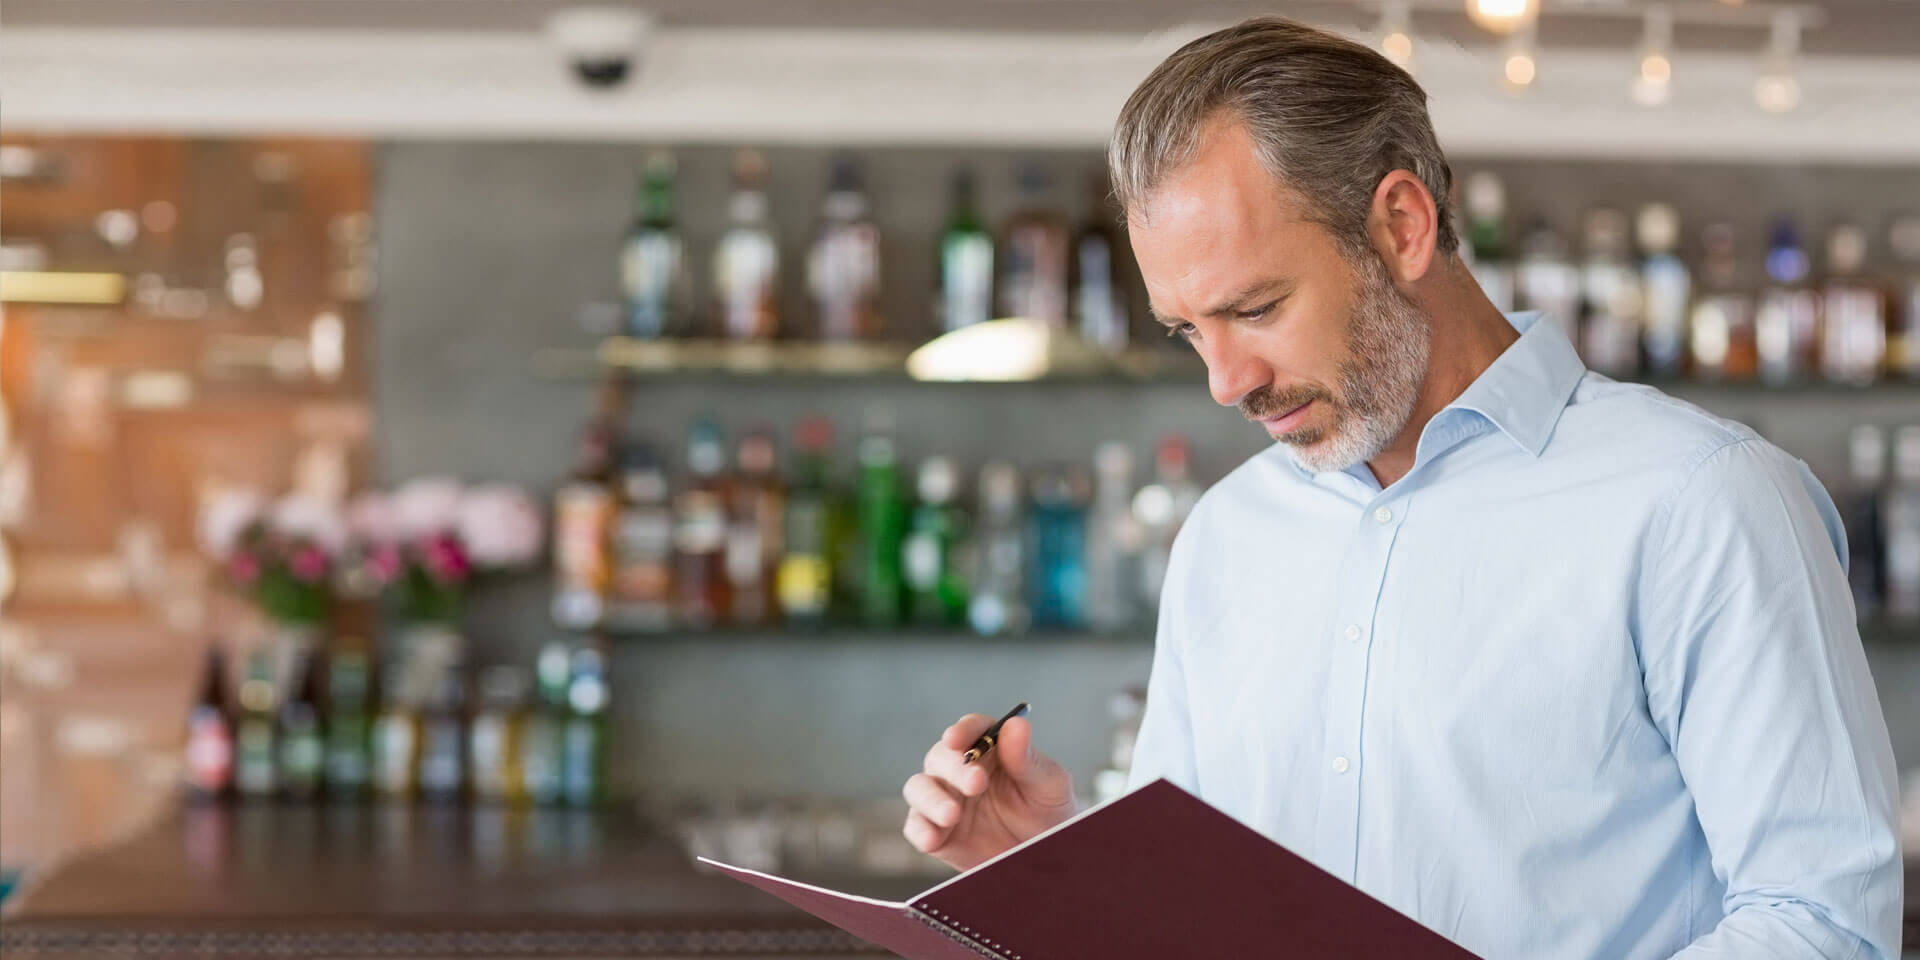 4 ways an outdated management system put a restaurant in trouble